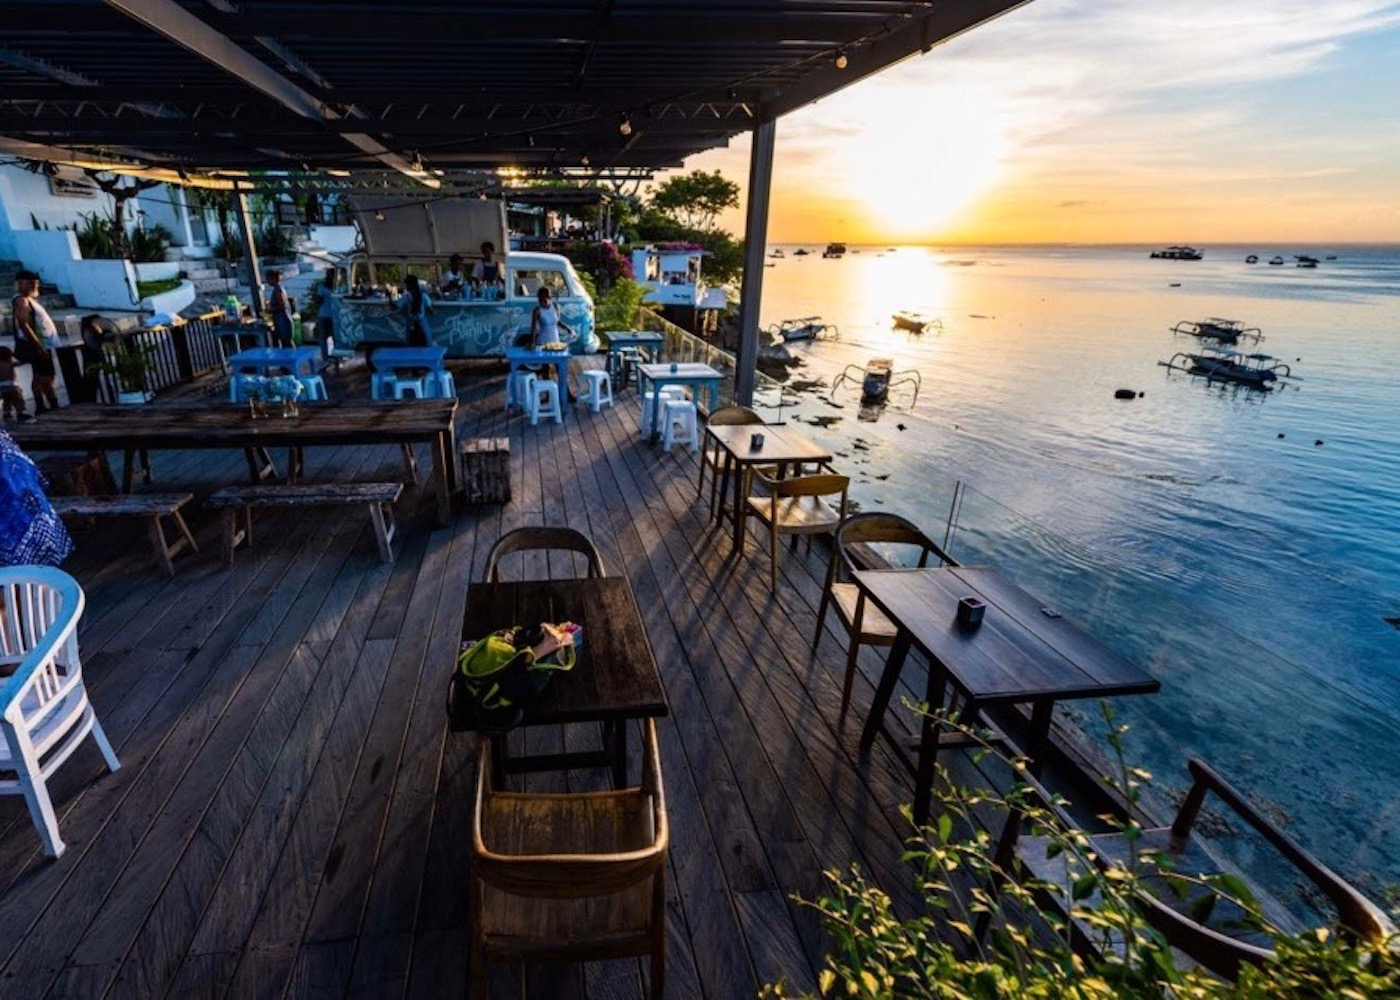 Thai Pantry restaurant at sunset on Nusa Lembongan island in Bali, Indonesia